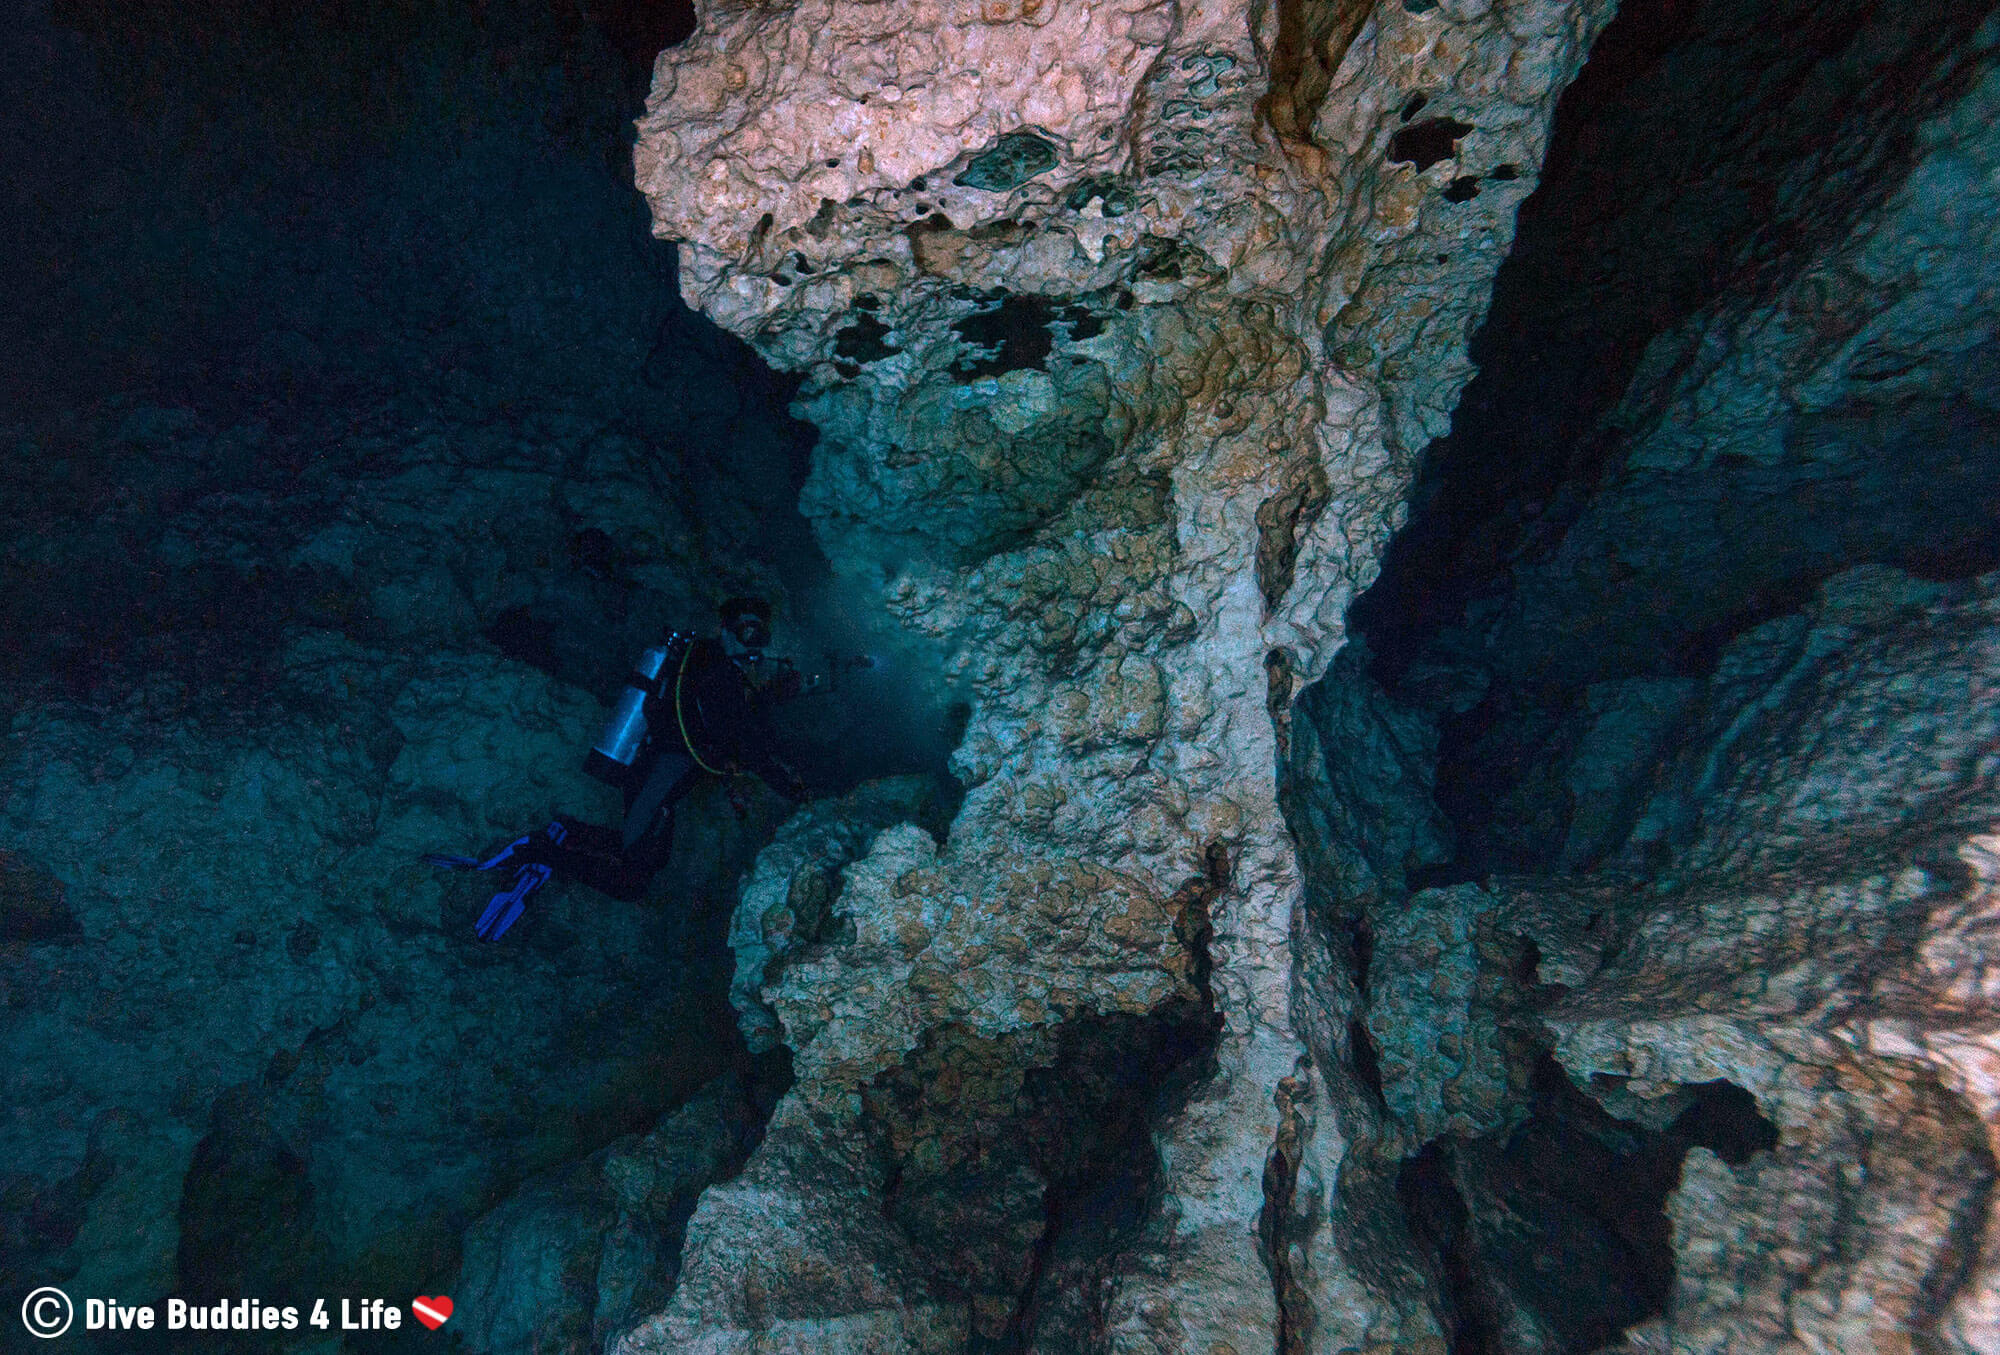 Joey Inspecting The Ancient Rock Formations Of The Devil's Den In Scuba Gear, Florida, USA